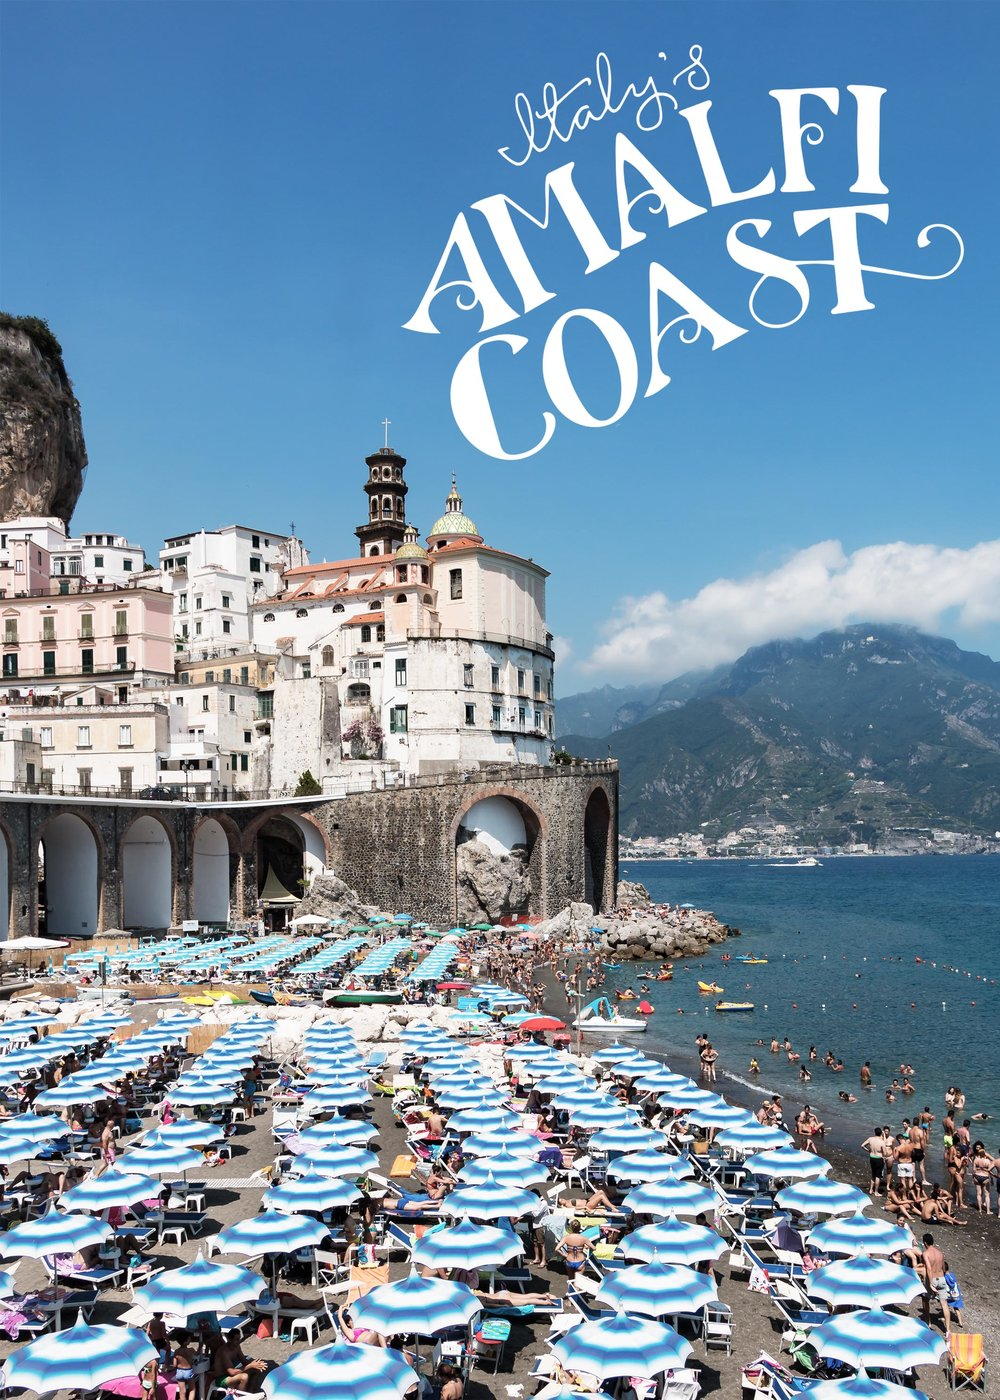 Italy's Amalfi Coast | 2016 Sea of Atlas Travel Recap